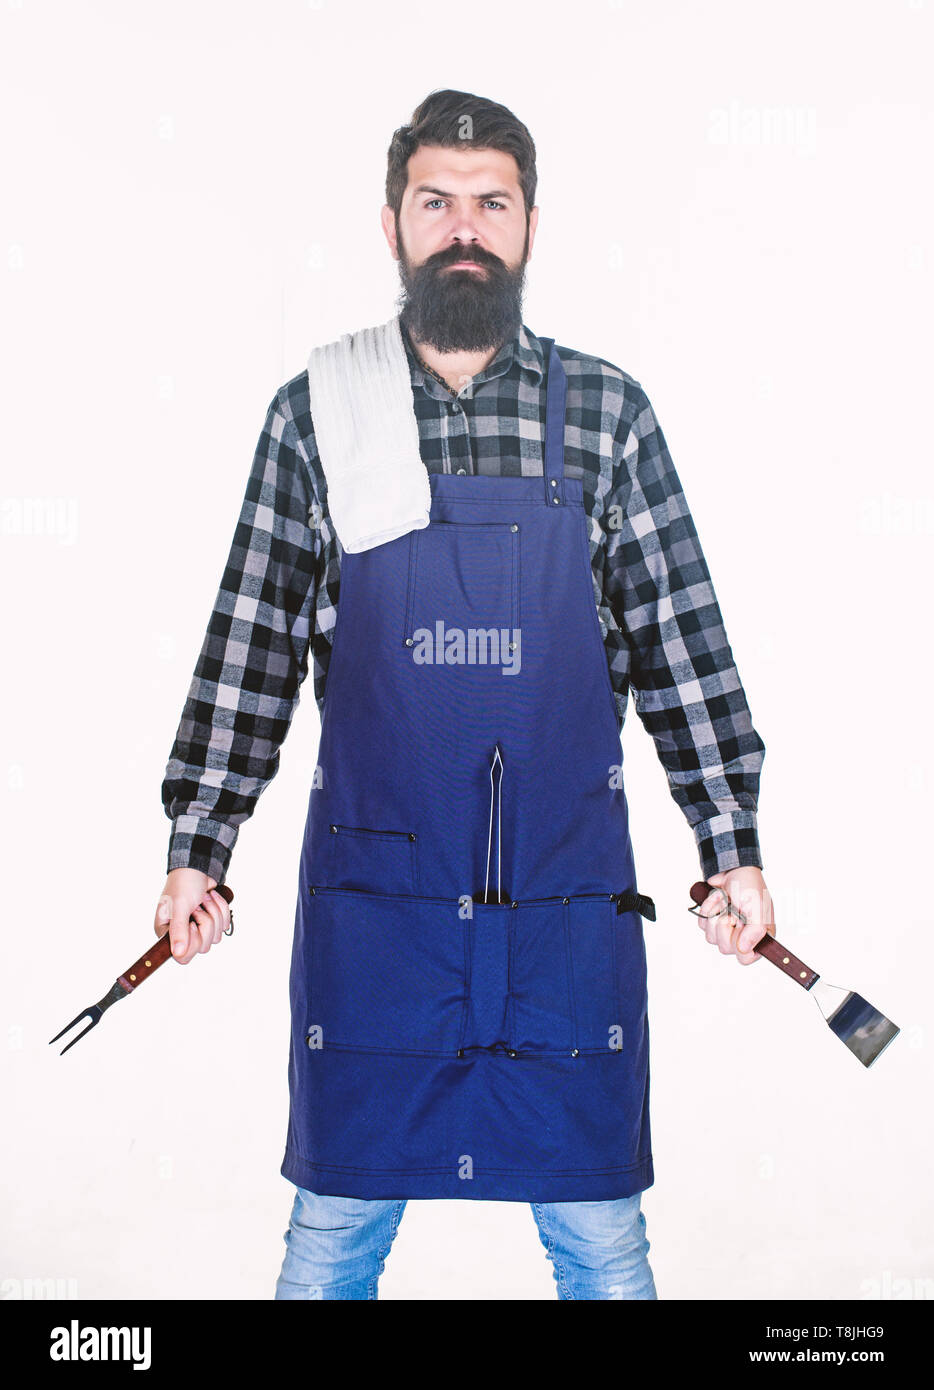 Man hold cooking utensils barbecue. Tools for roasting meat outdoors. Picnic and barbecue. Cooking meat in park. Masculine hobby. Bearded hipster wear apron for barbecue. Roasting and grilling food. - Stock Image